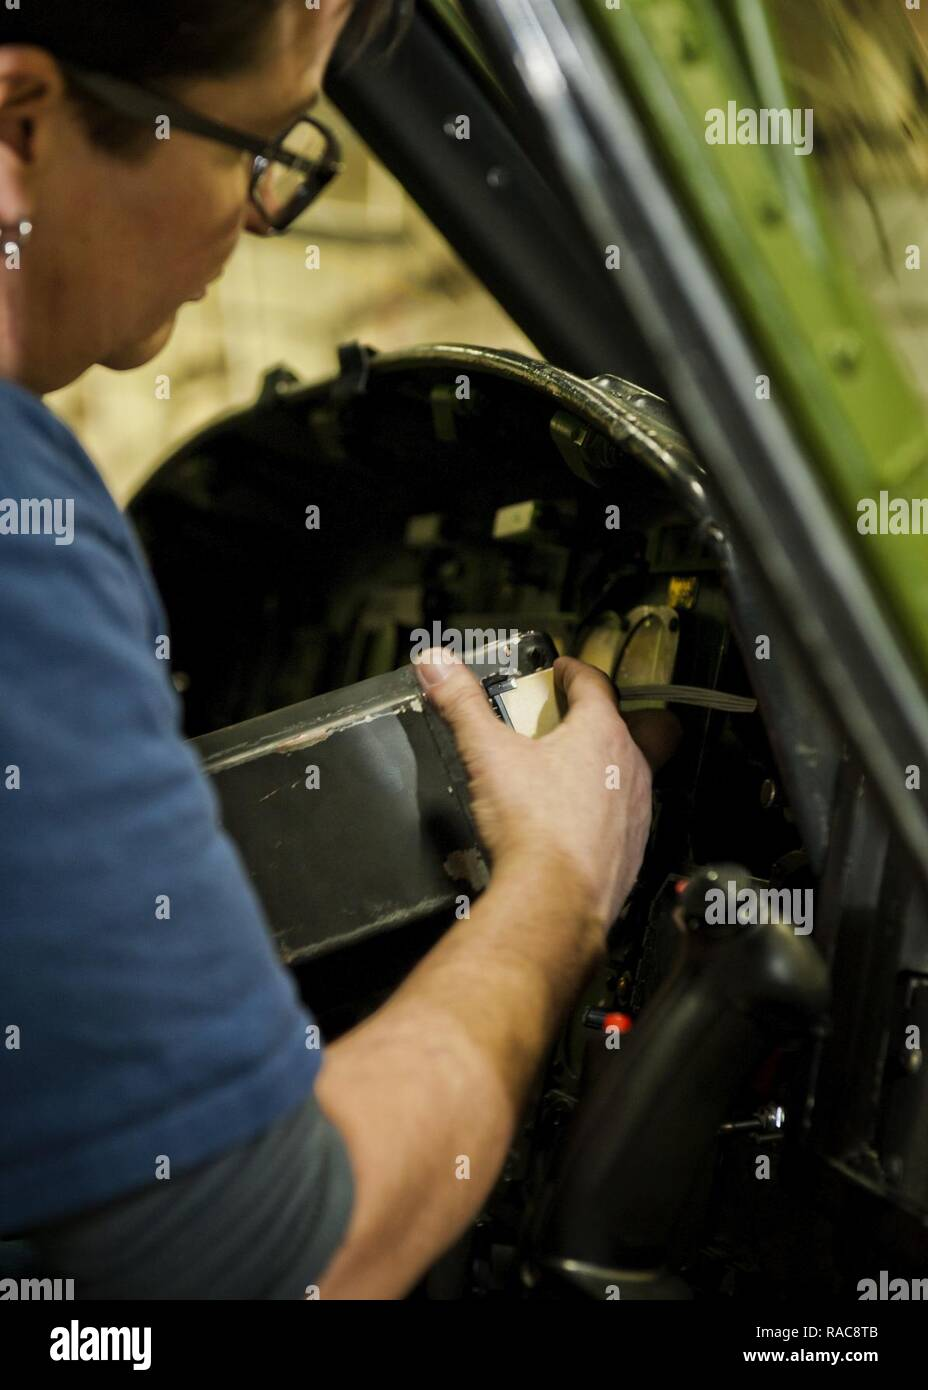 Kim Smith, 54th Helicopter Squadron UH-1N Iroquois mechanic, installs the attitude director indicator into a UH-1N Iroquois at Minot Air Force Base, N.D., Jan. 18, 2017. The ADI, aka gyro horizon, is an instrument that states the orientation of the helicopter to the horizon. - Stock Image